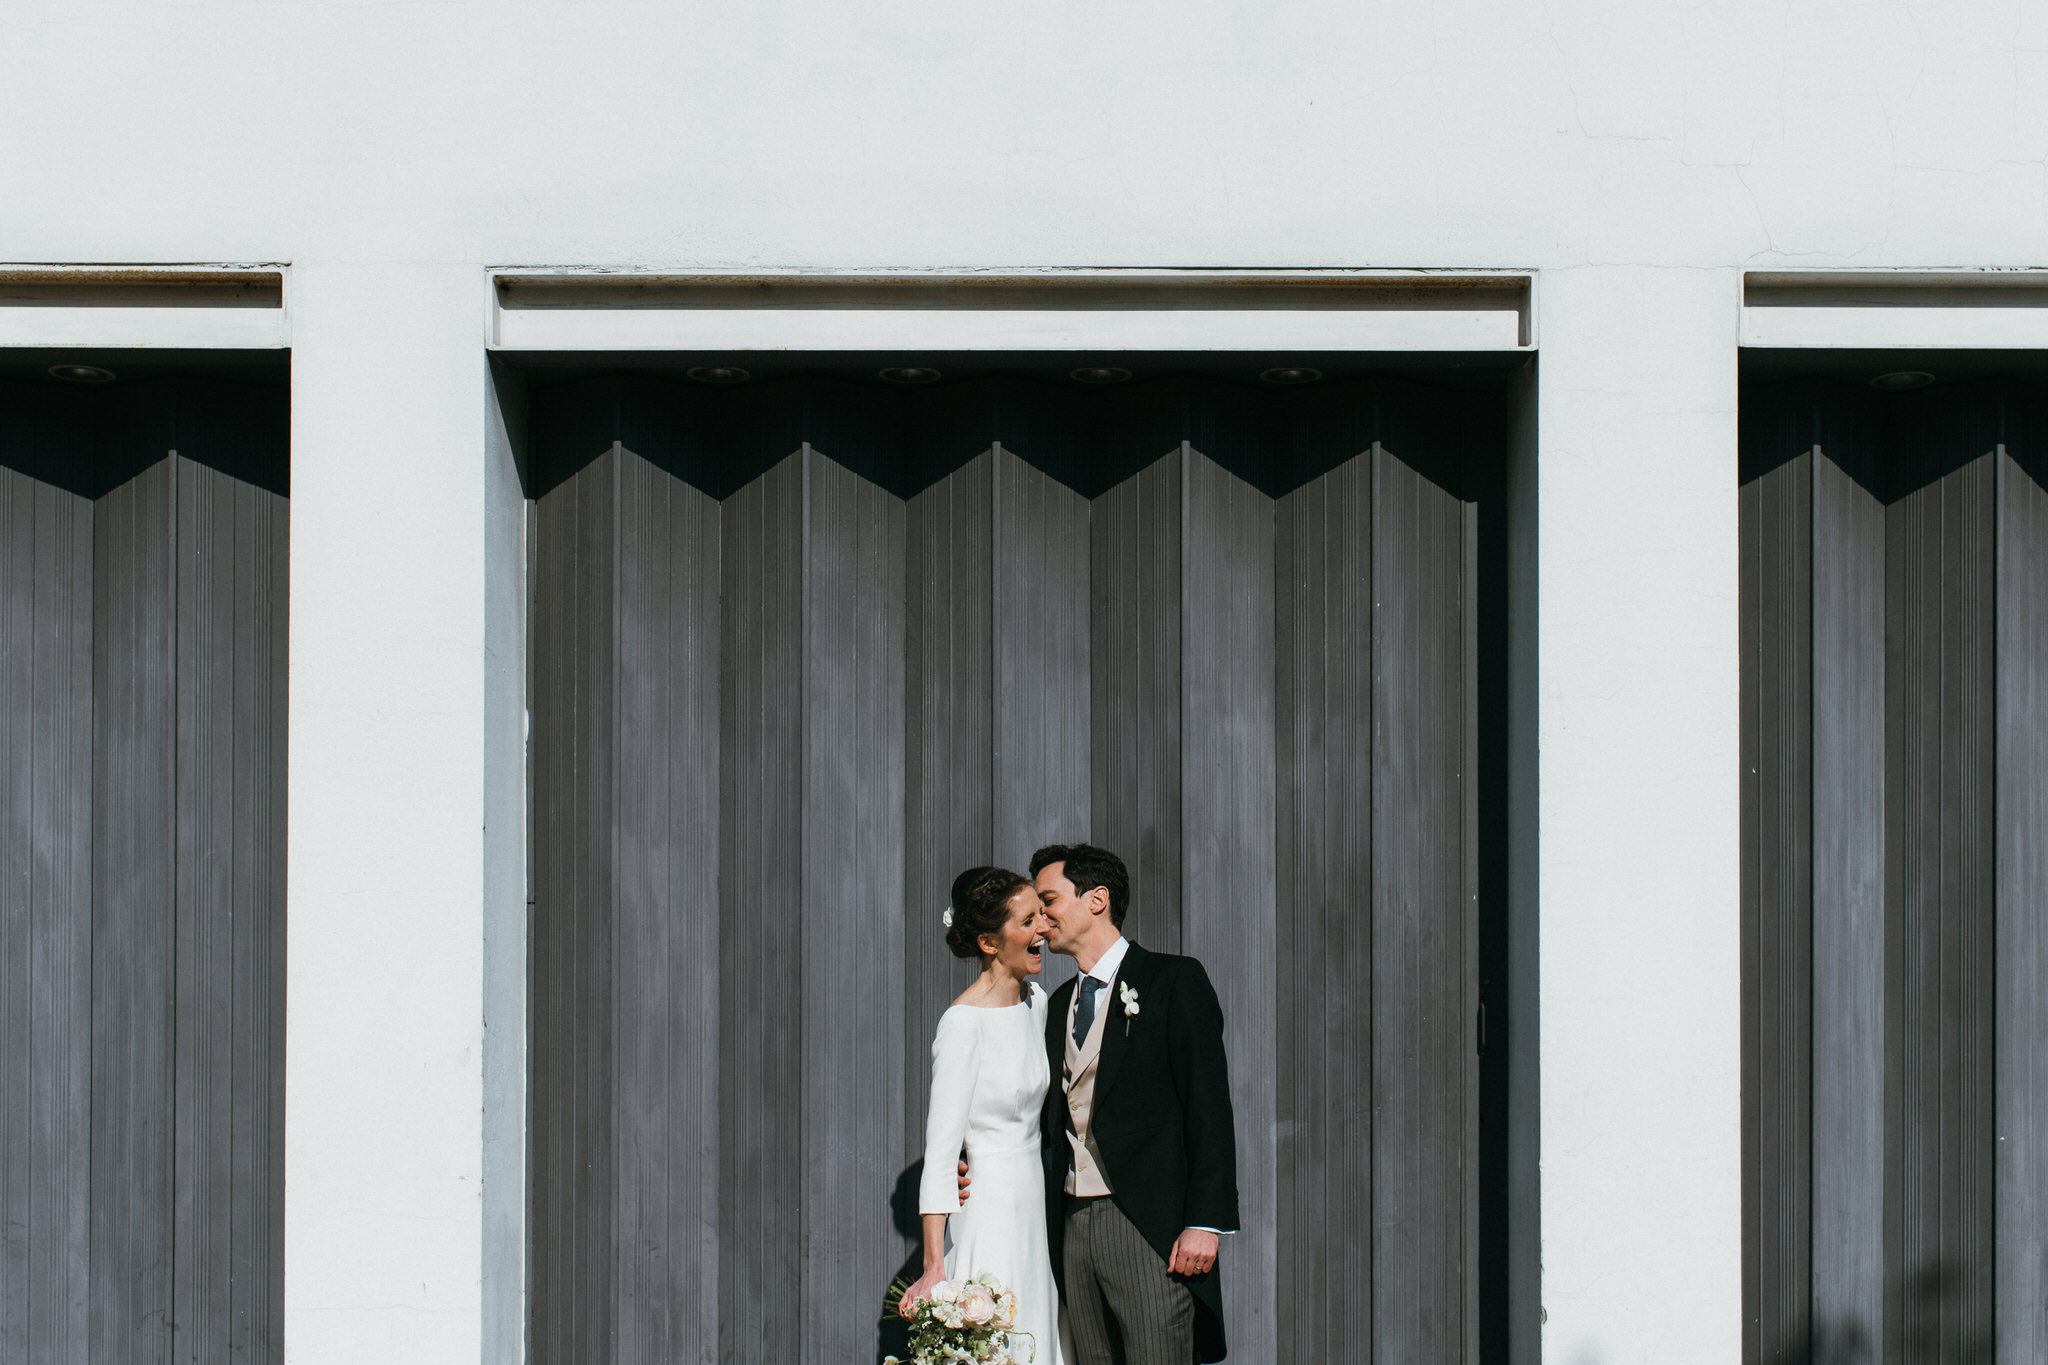 Sunbeam studios wedding